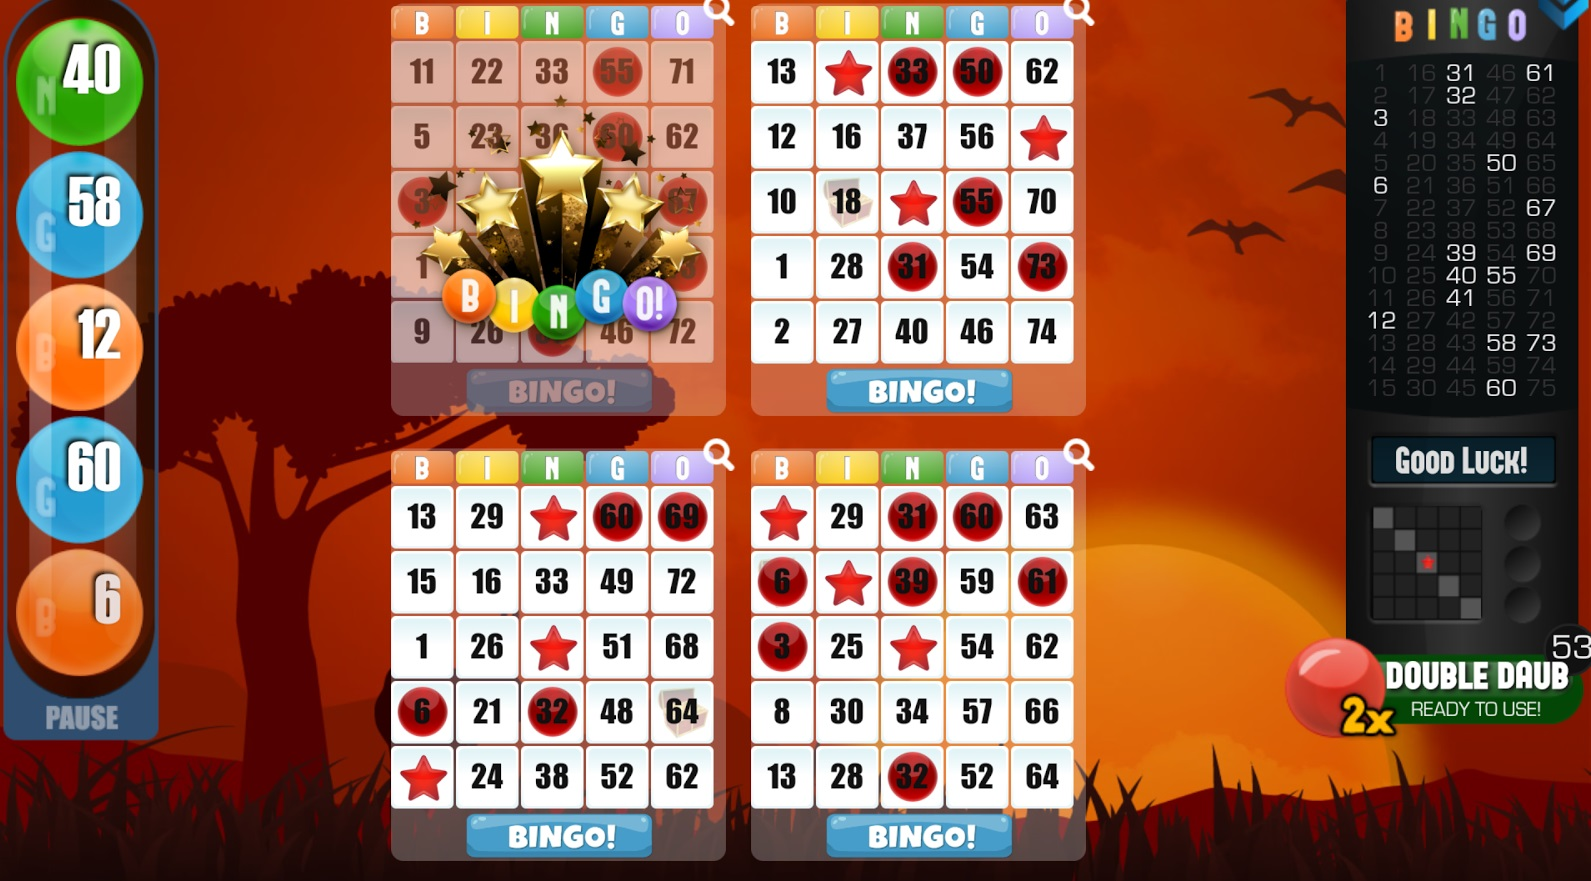 Shamrock Bingo - Play for Free Online with No Downloads